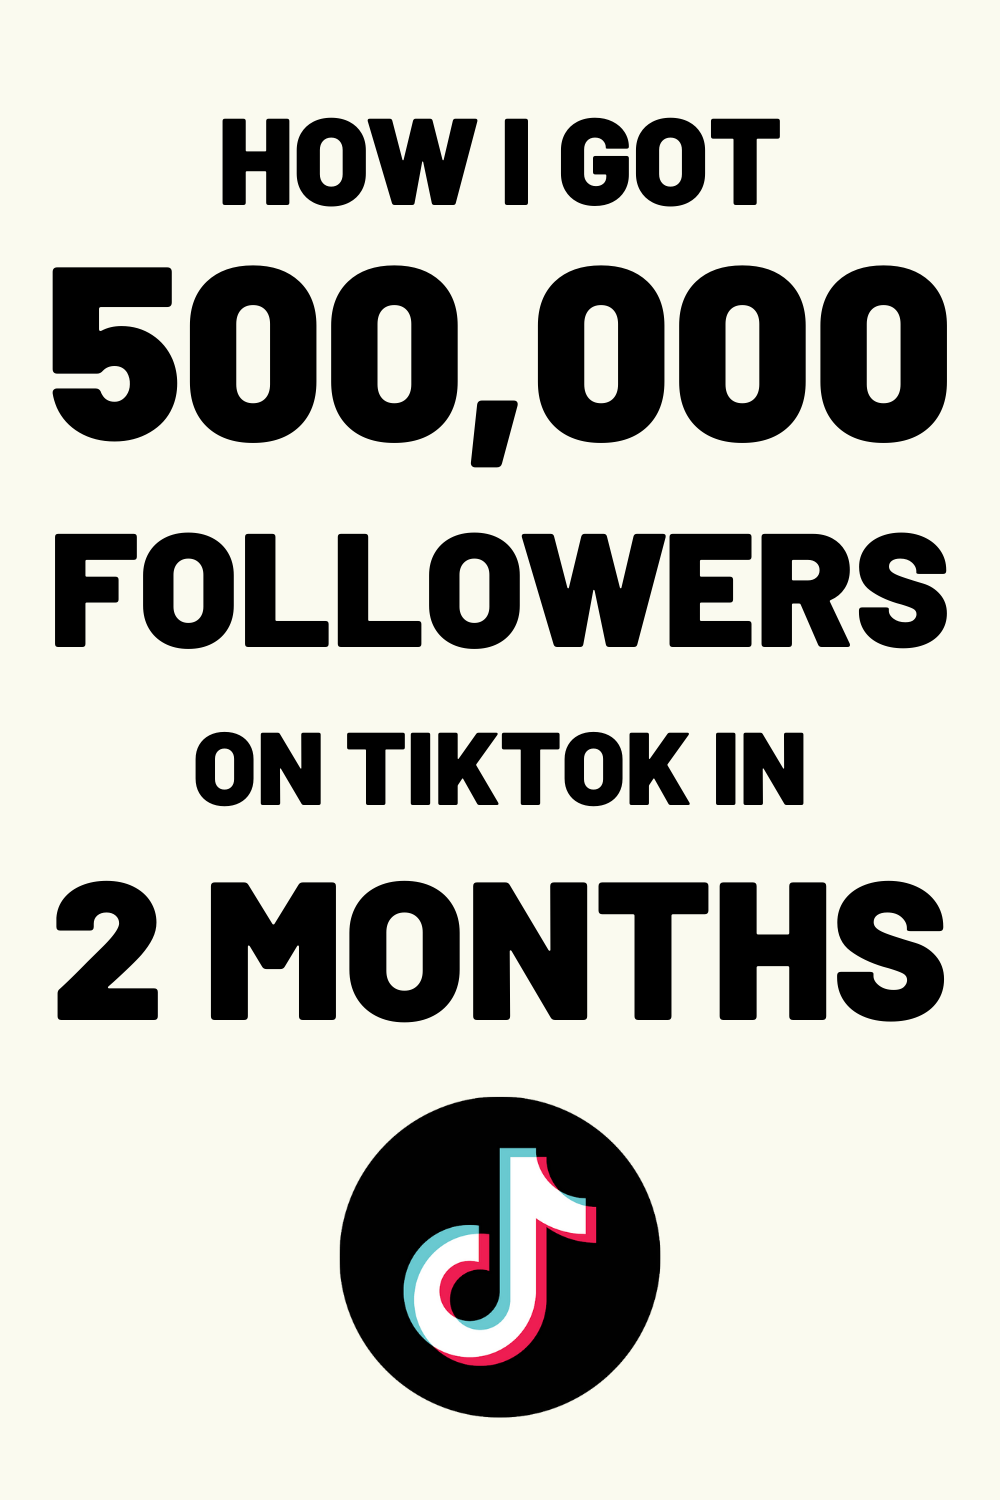 Ultimate Guide To Tiktok How I Got 500k Followers In 2 Months Grow Social Media Social Media Marketing How To Get Followers